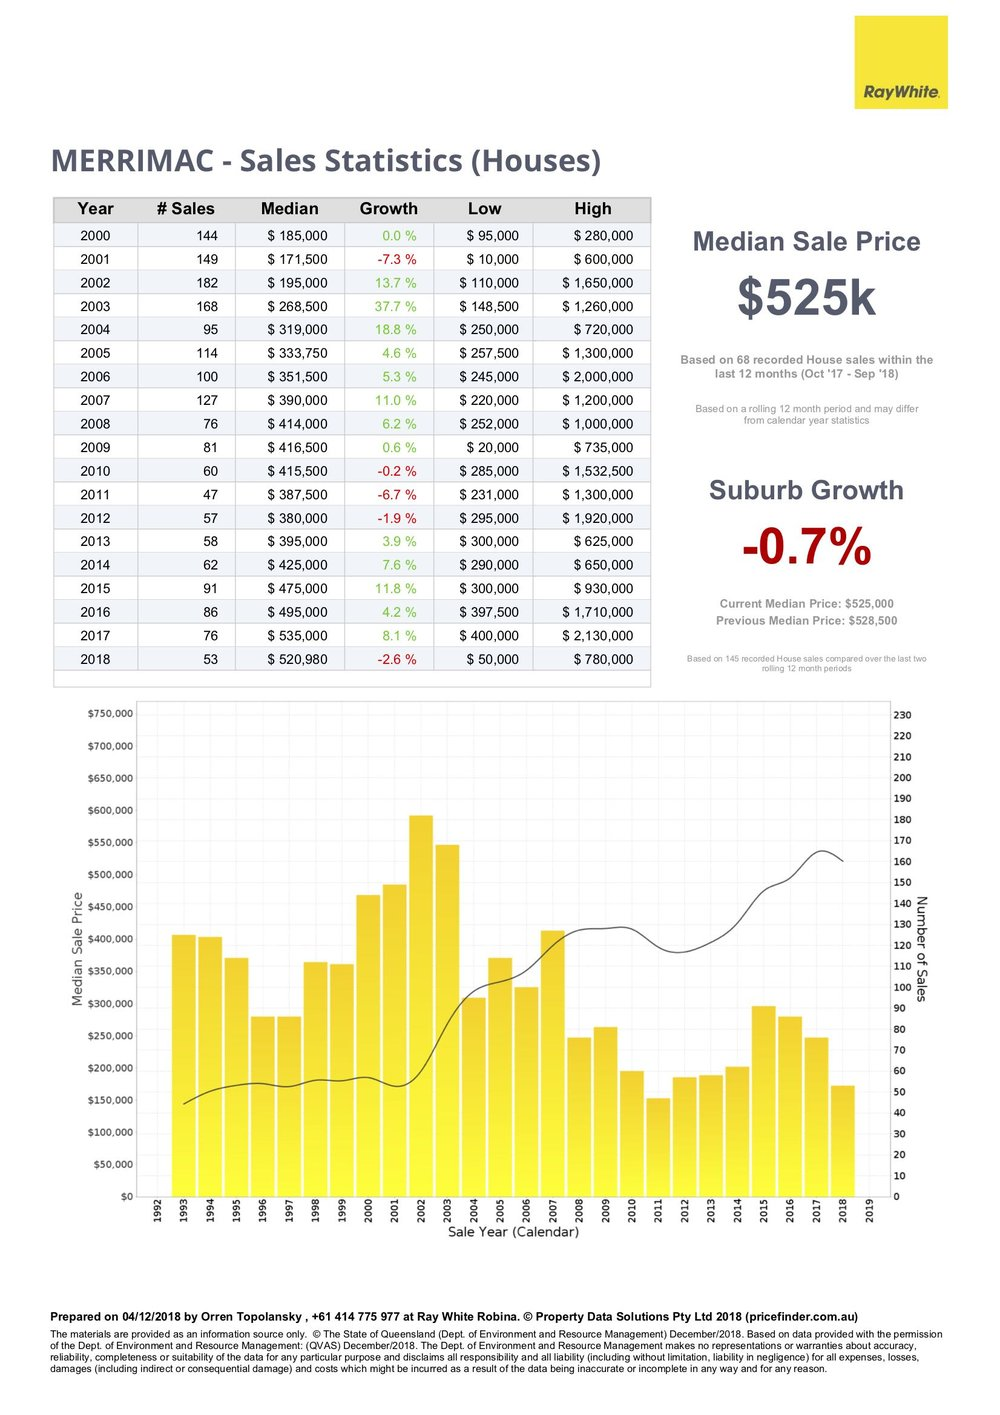 Sales statistics for houses in Merrimac, Gold Coast